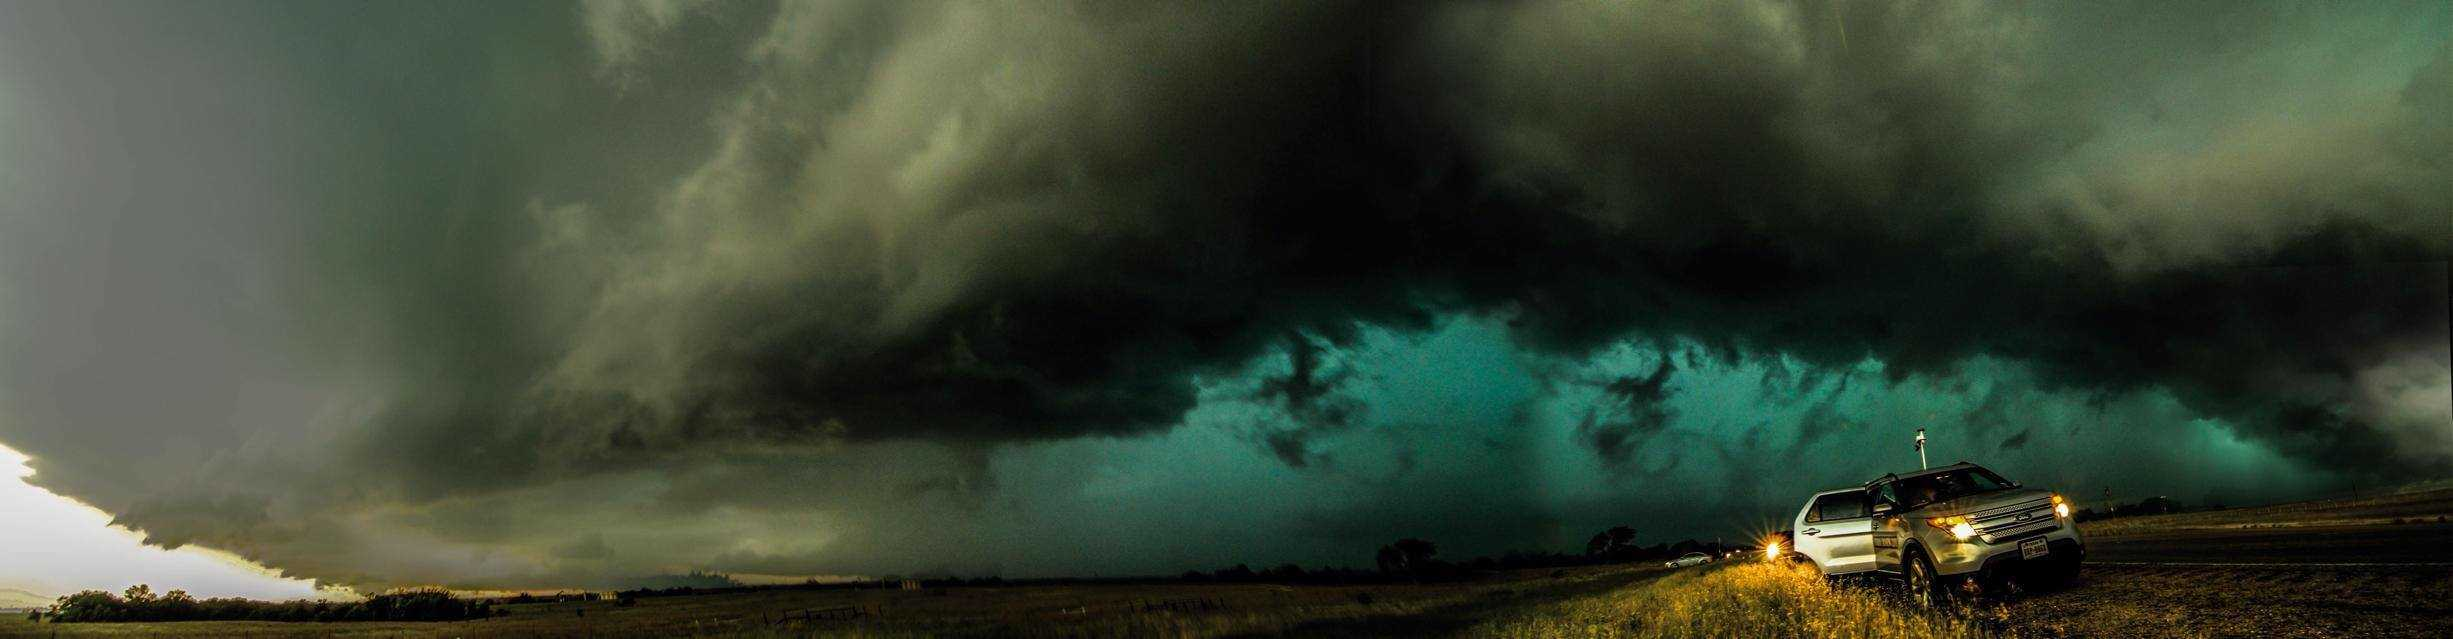 HP Supercell near Gainesville TX May 2013